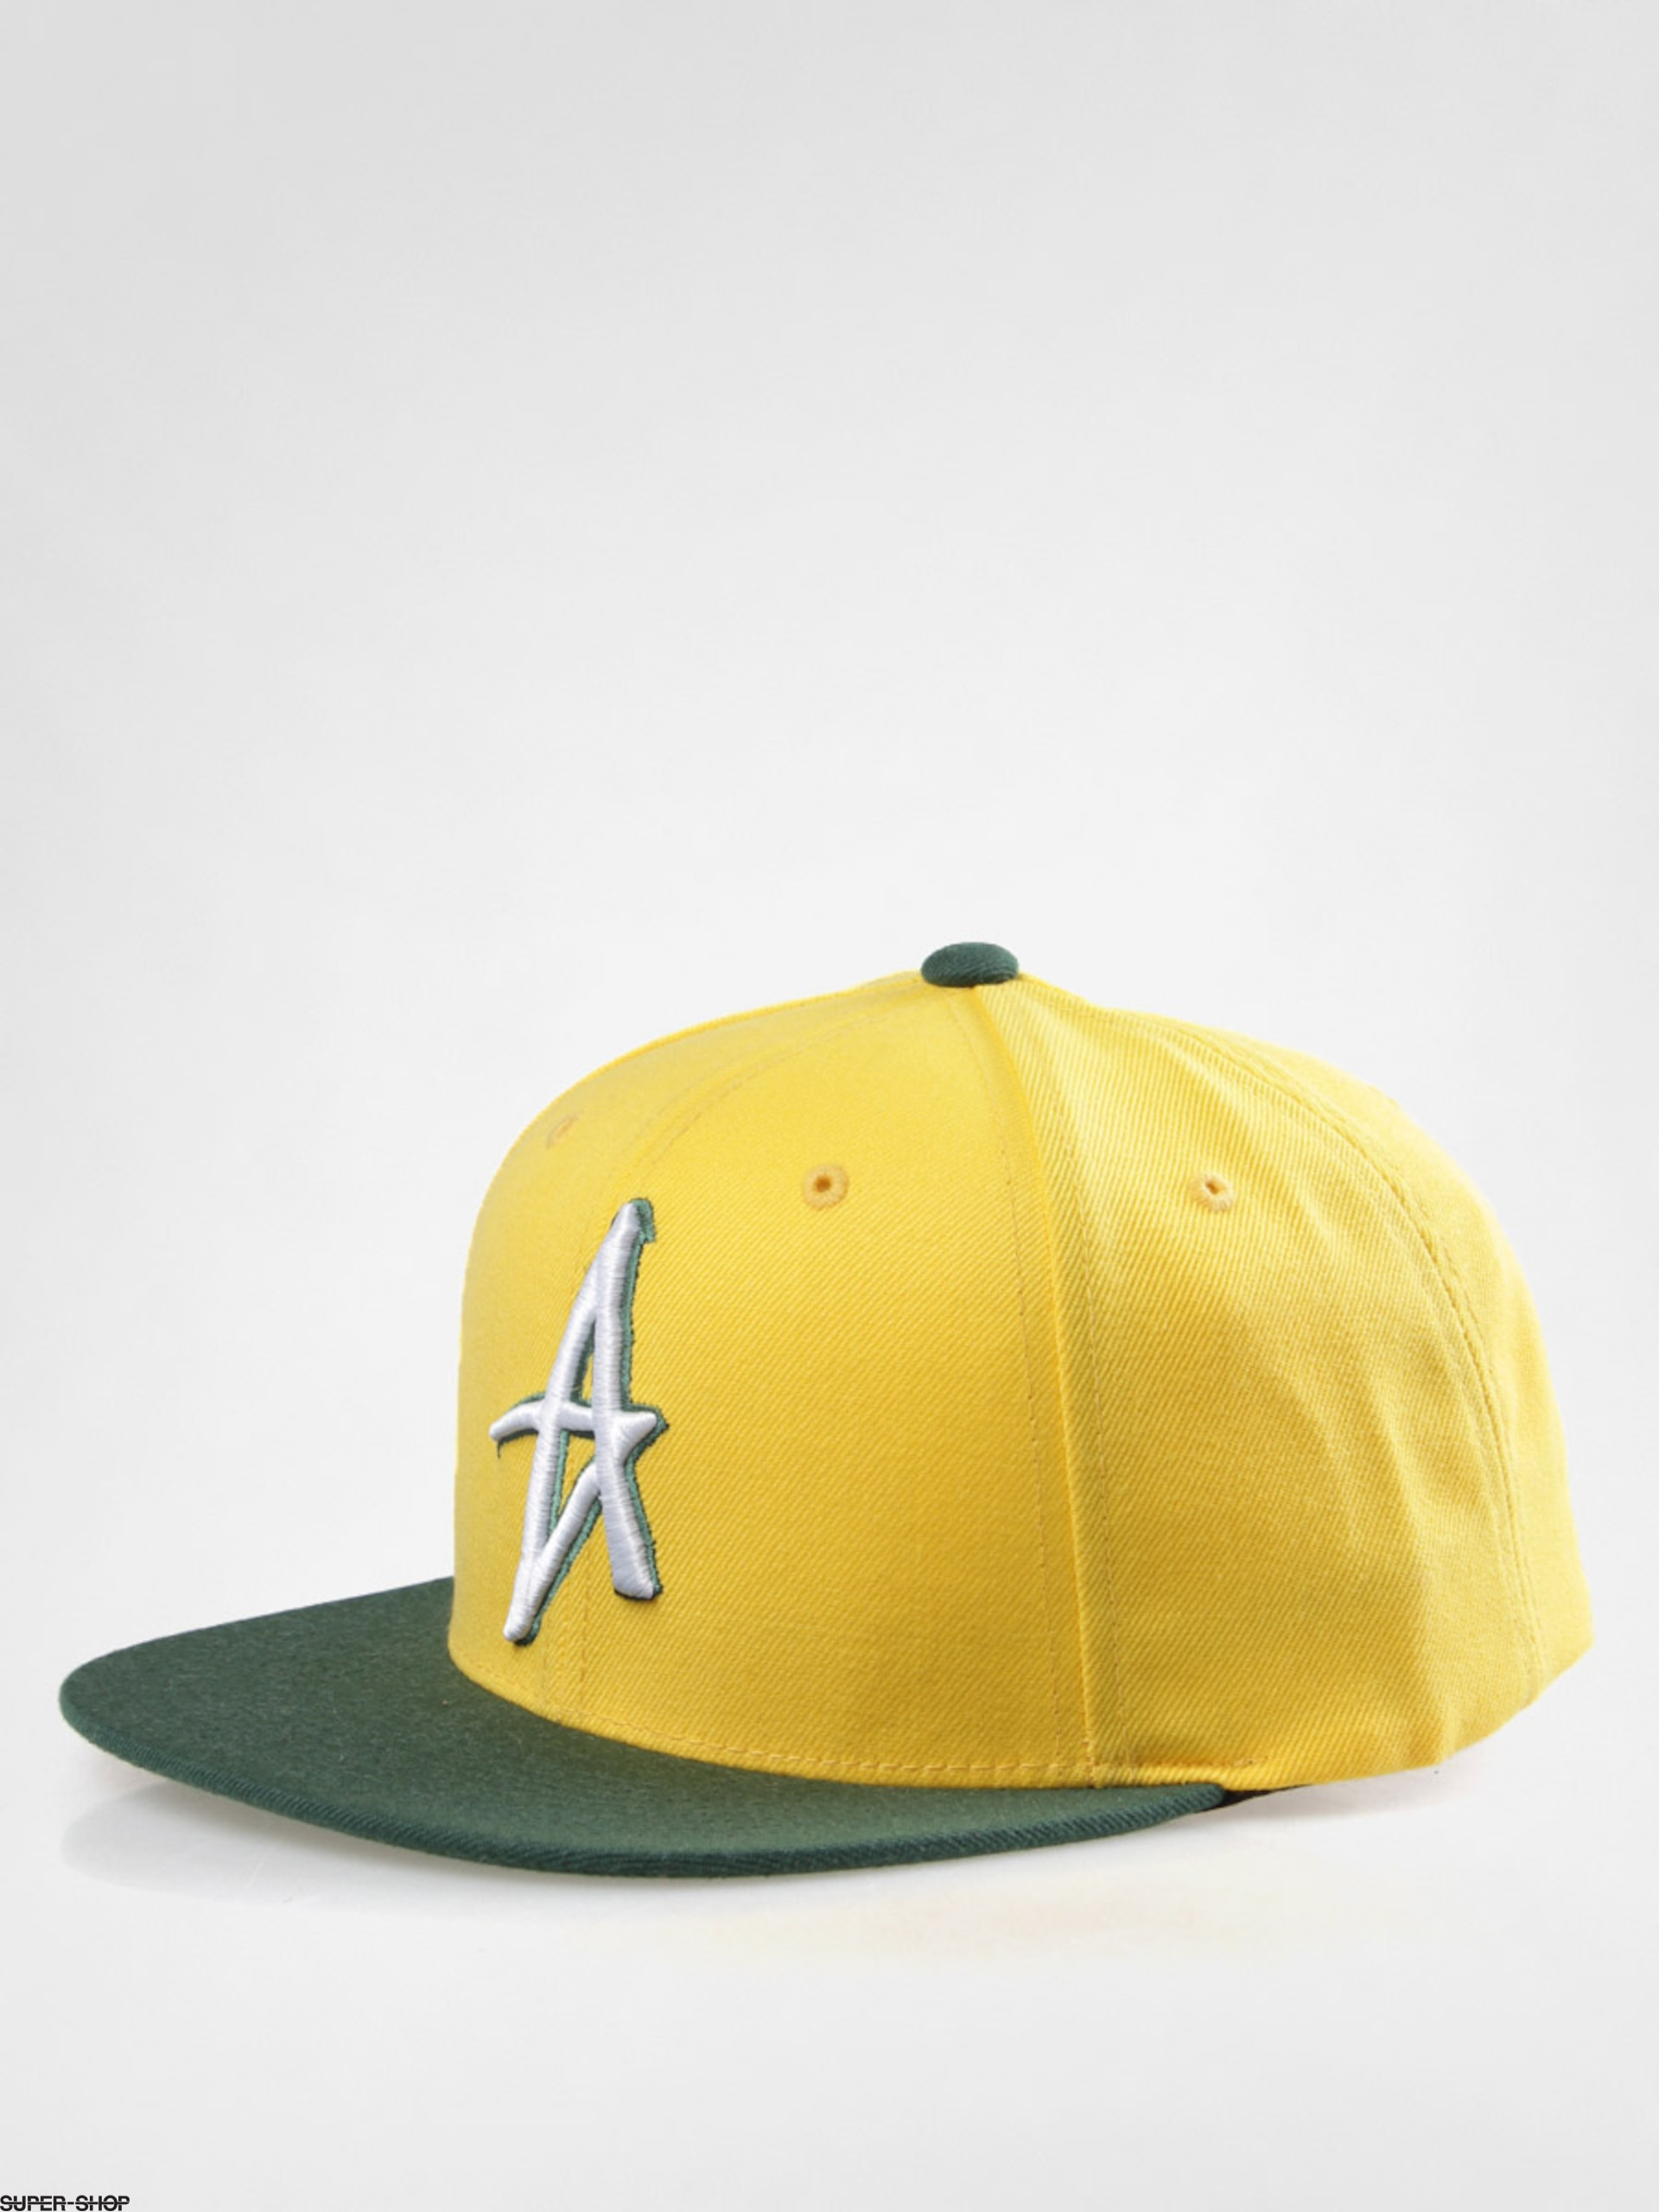 Altamont Cap SMU Decades Starter (yellow)